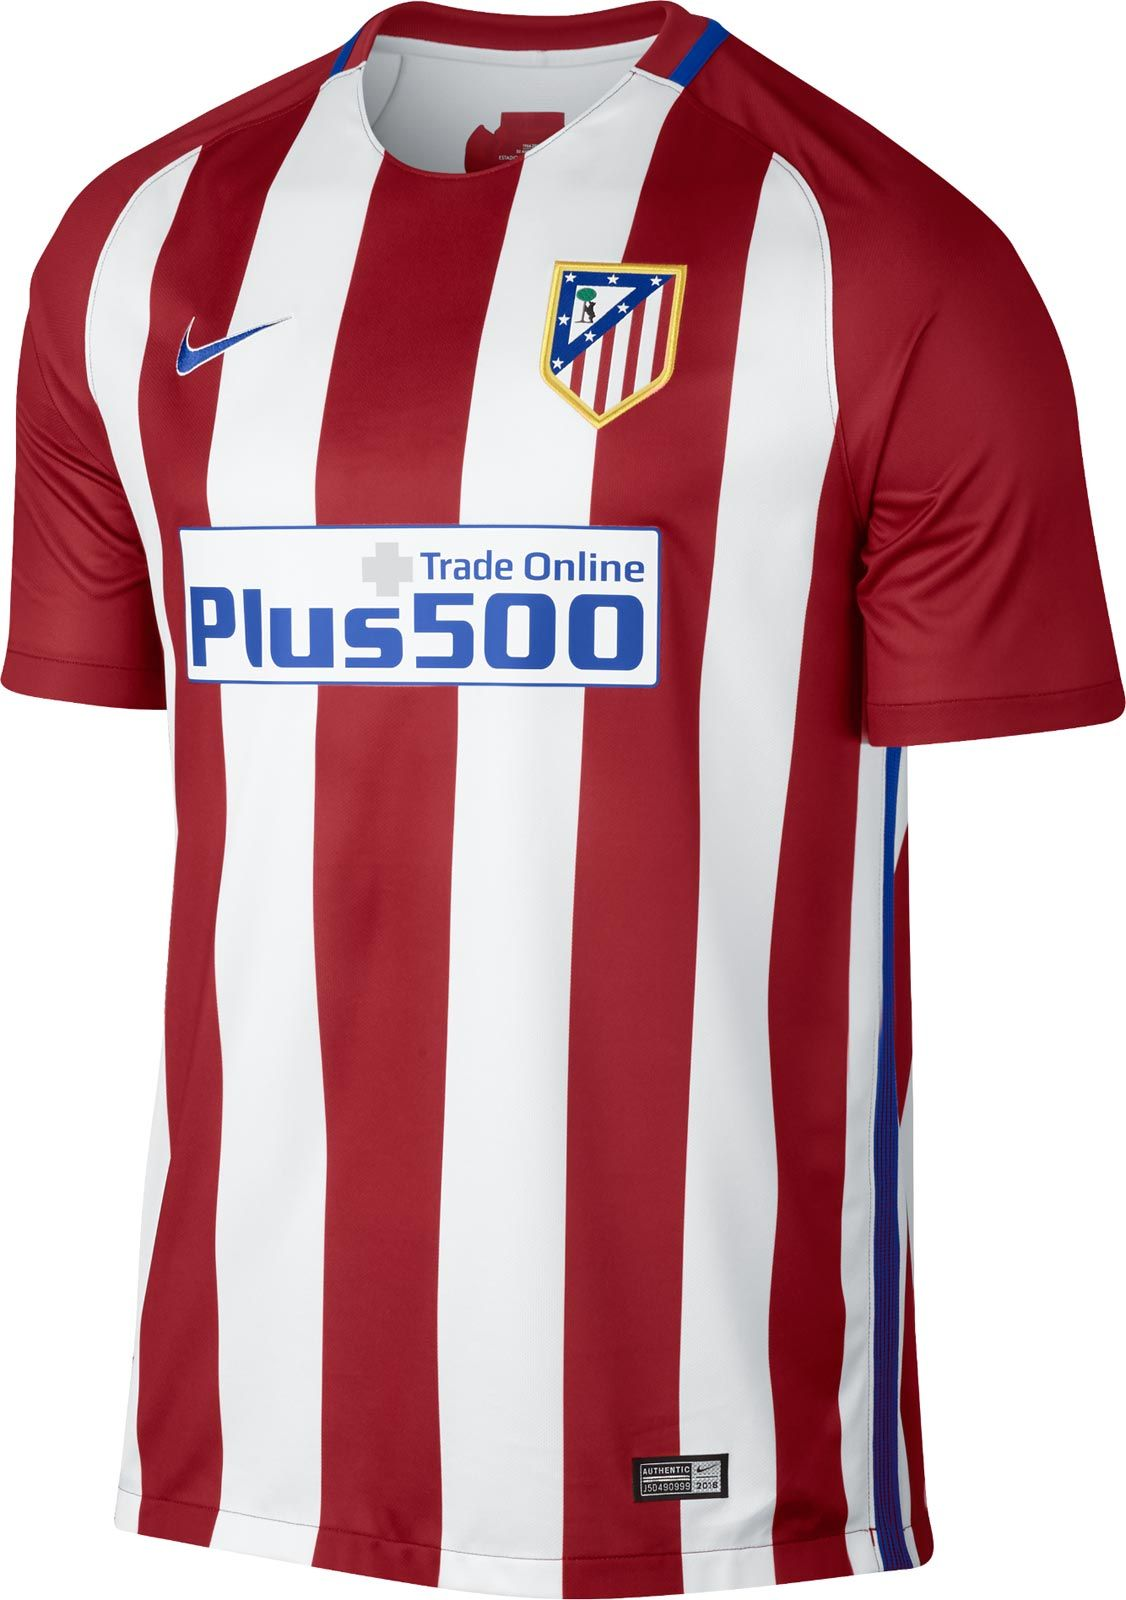 Atletico Madrid 16 17 Home Kit Released Atletico Madrid Soccer Jersey Soccer Shirts